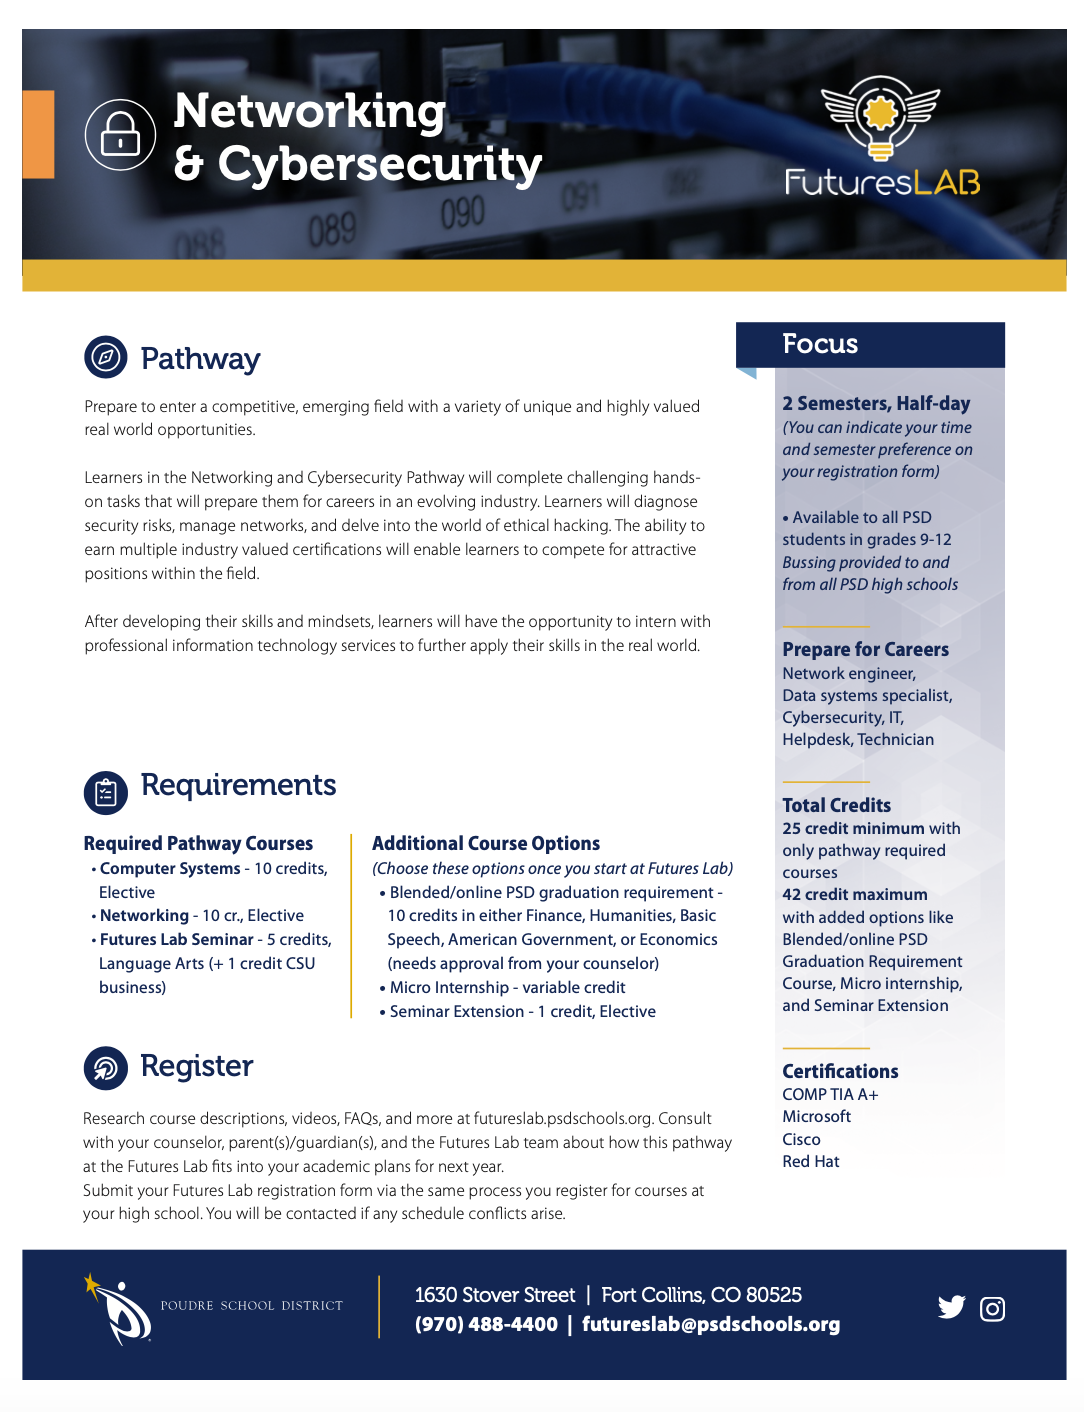 Networking & Cybersecurity Pathway flyer